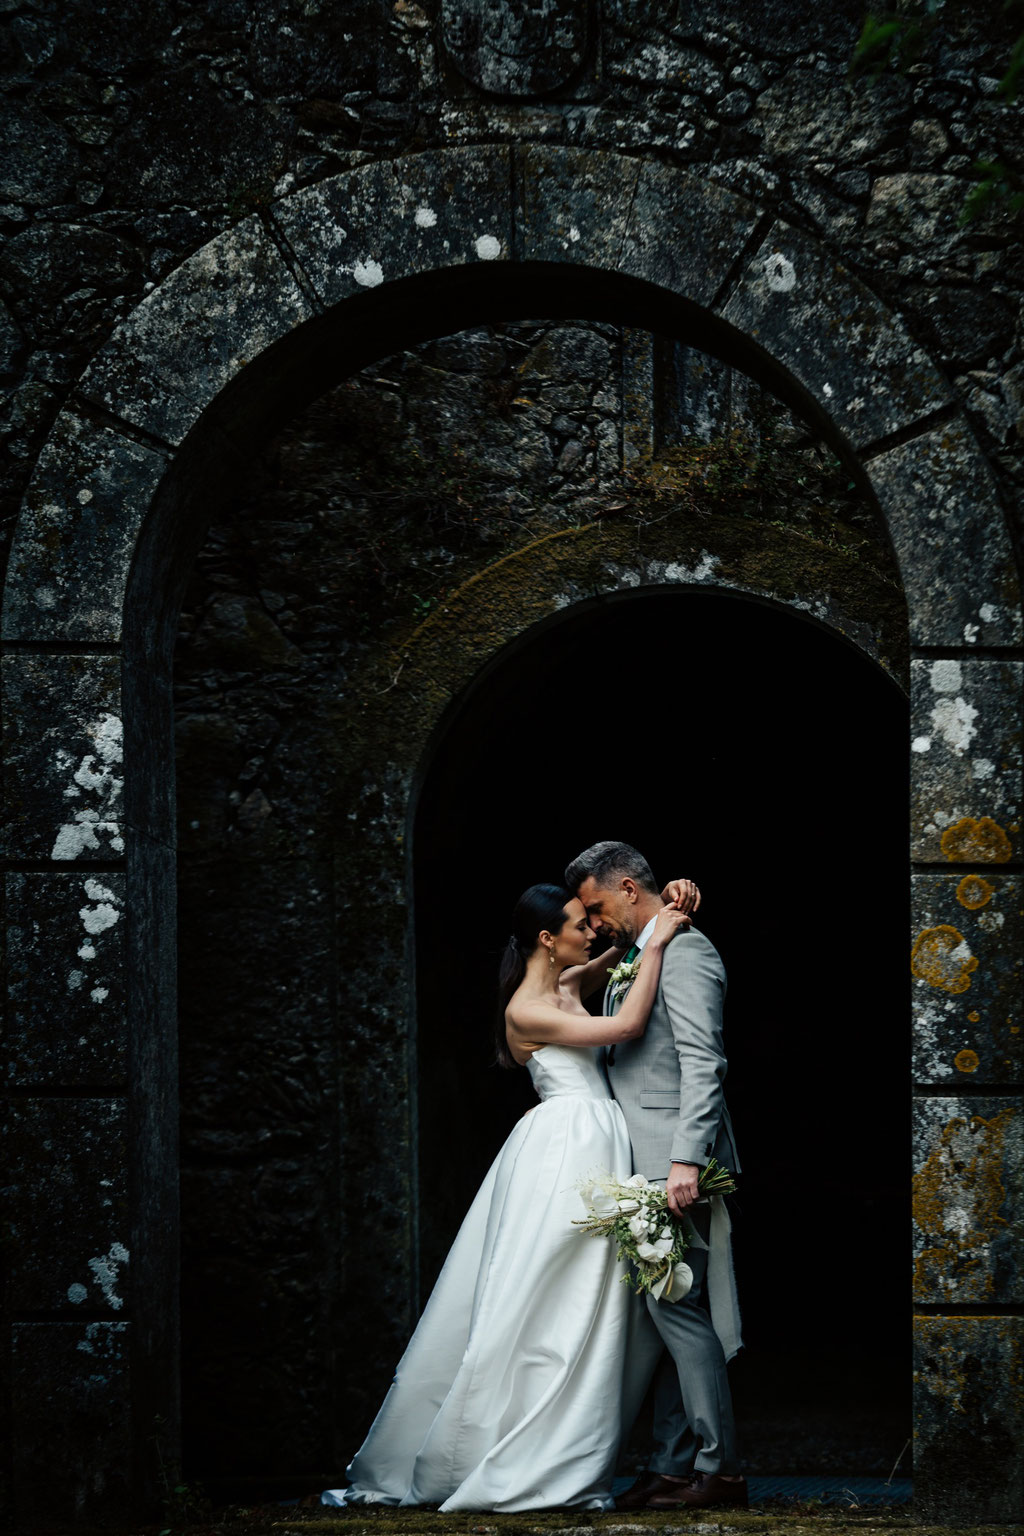 ROVA FineArt wedding photography - Hochzeitsfotografie Portugal - Elopement Castle